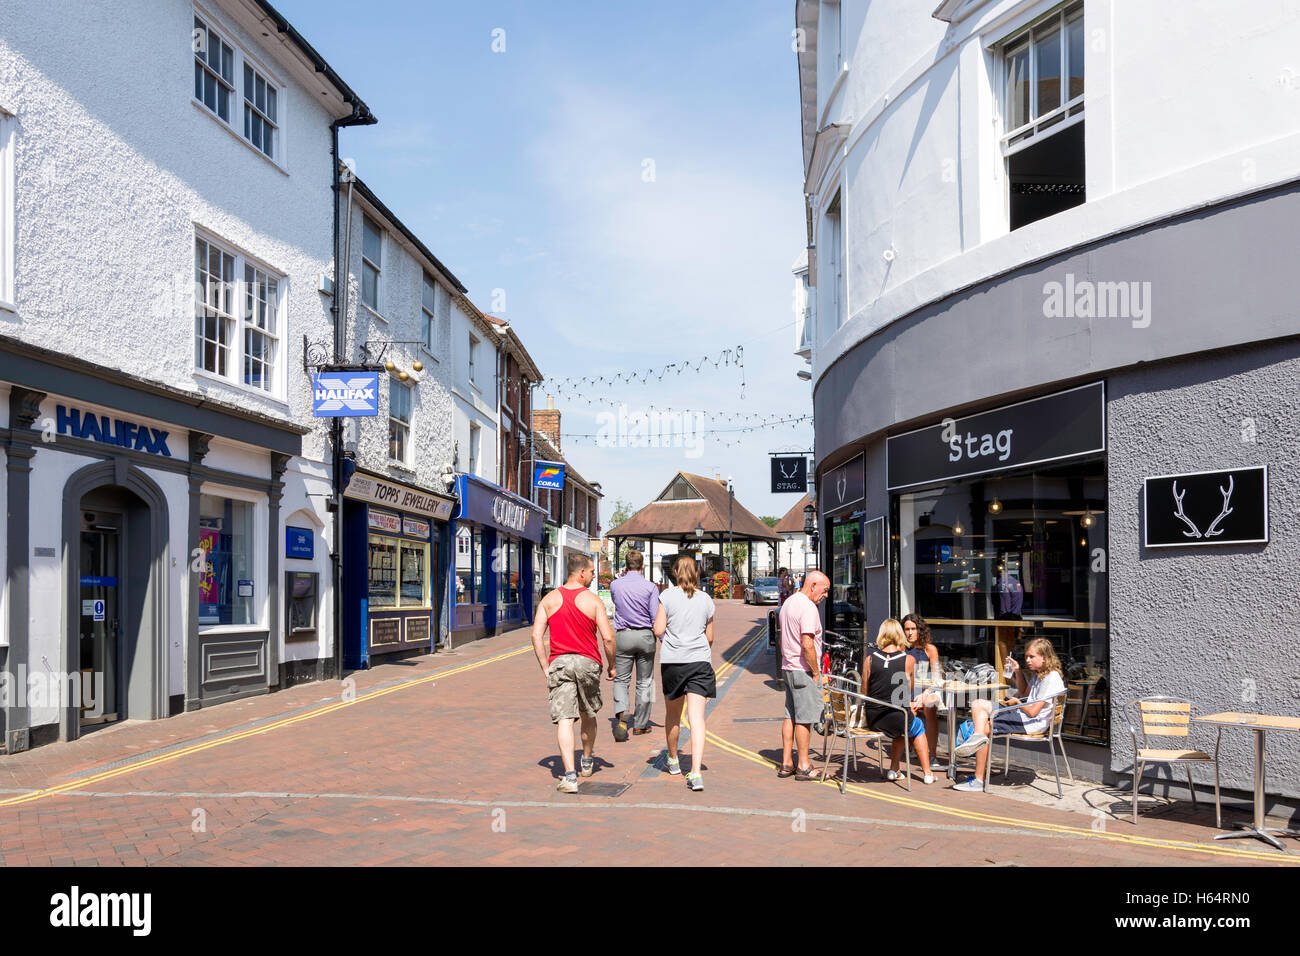 Outdoor Cafe Castle Street Ashford Kent England United Kingdom